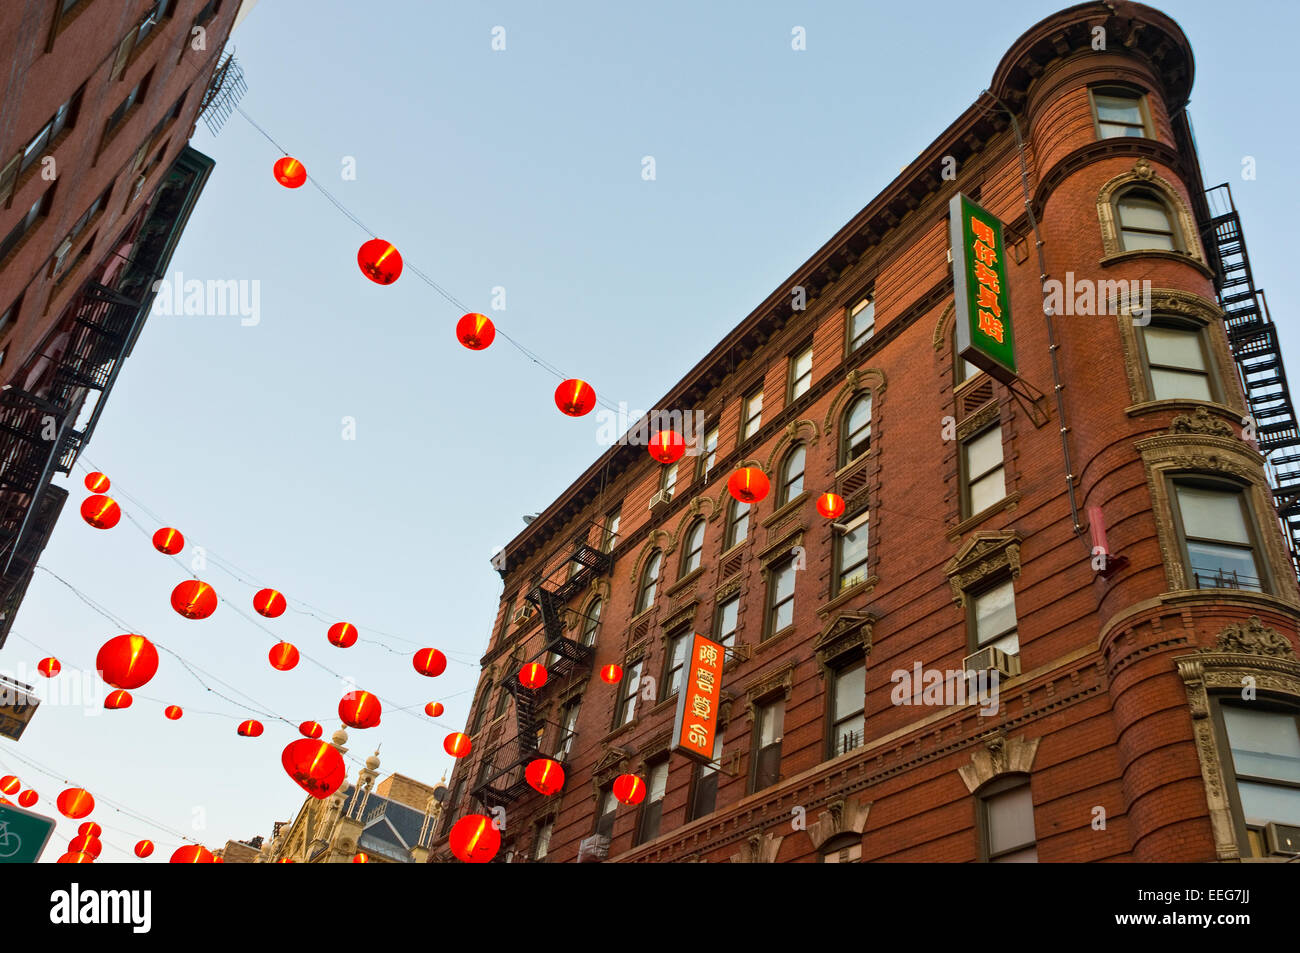 New York, NY -  17 April 2009 - Red Chinese Lanterns on Eldridge Street in Chinatown ©Stacy Walsh Rosenstock/Alamy Stock Photo